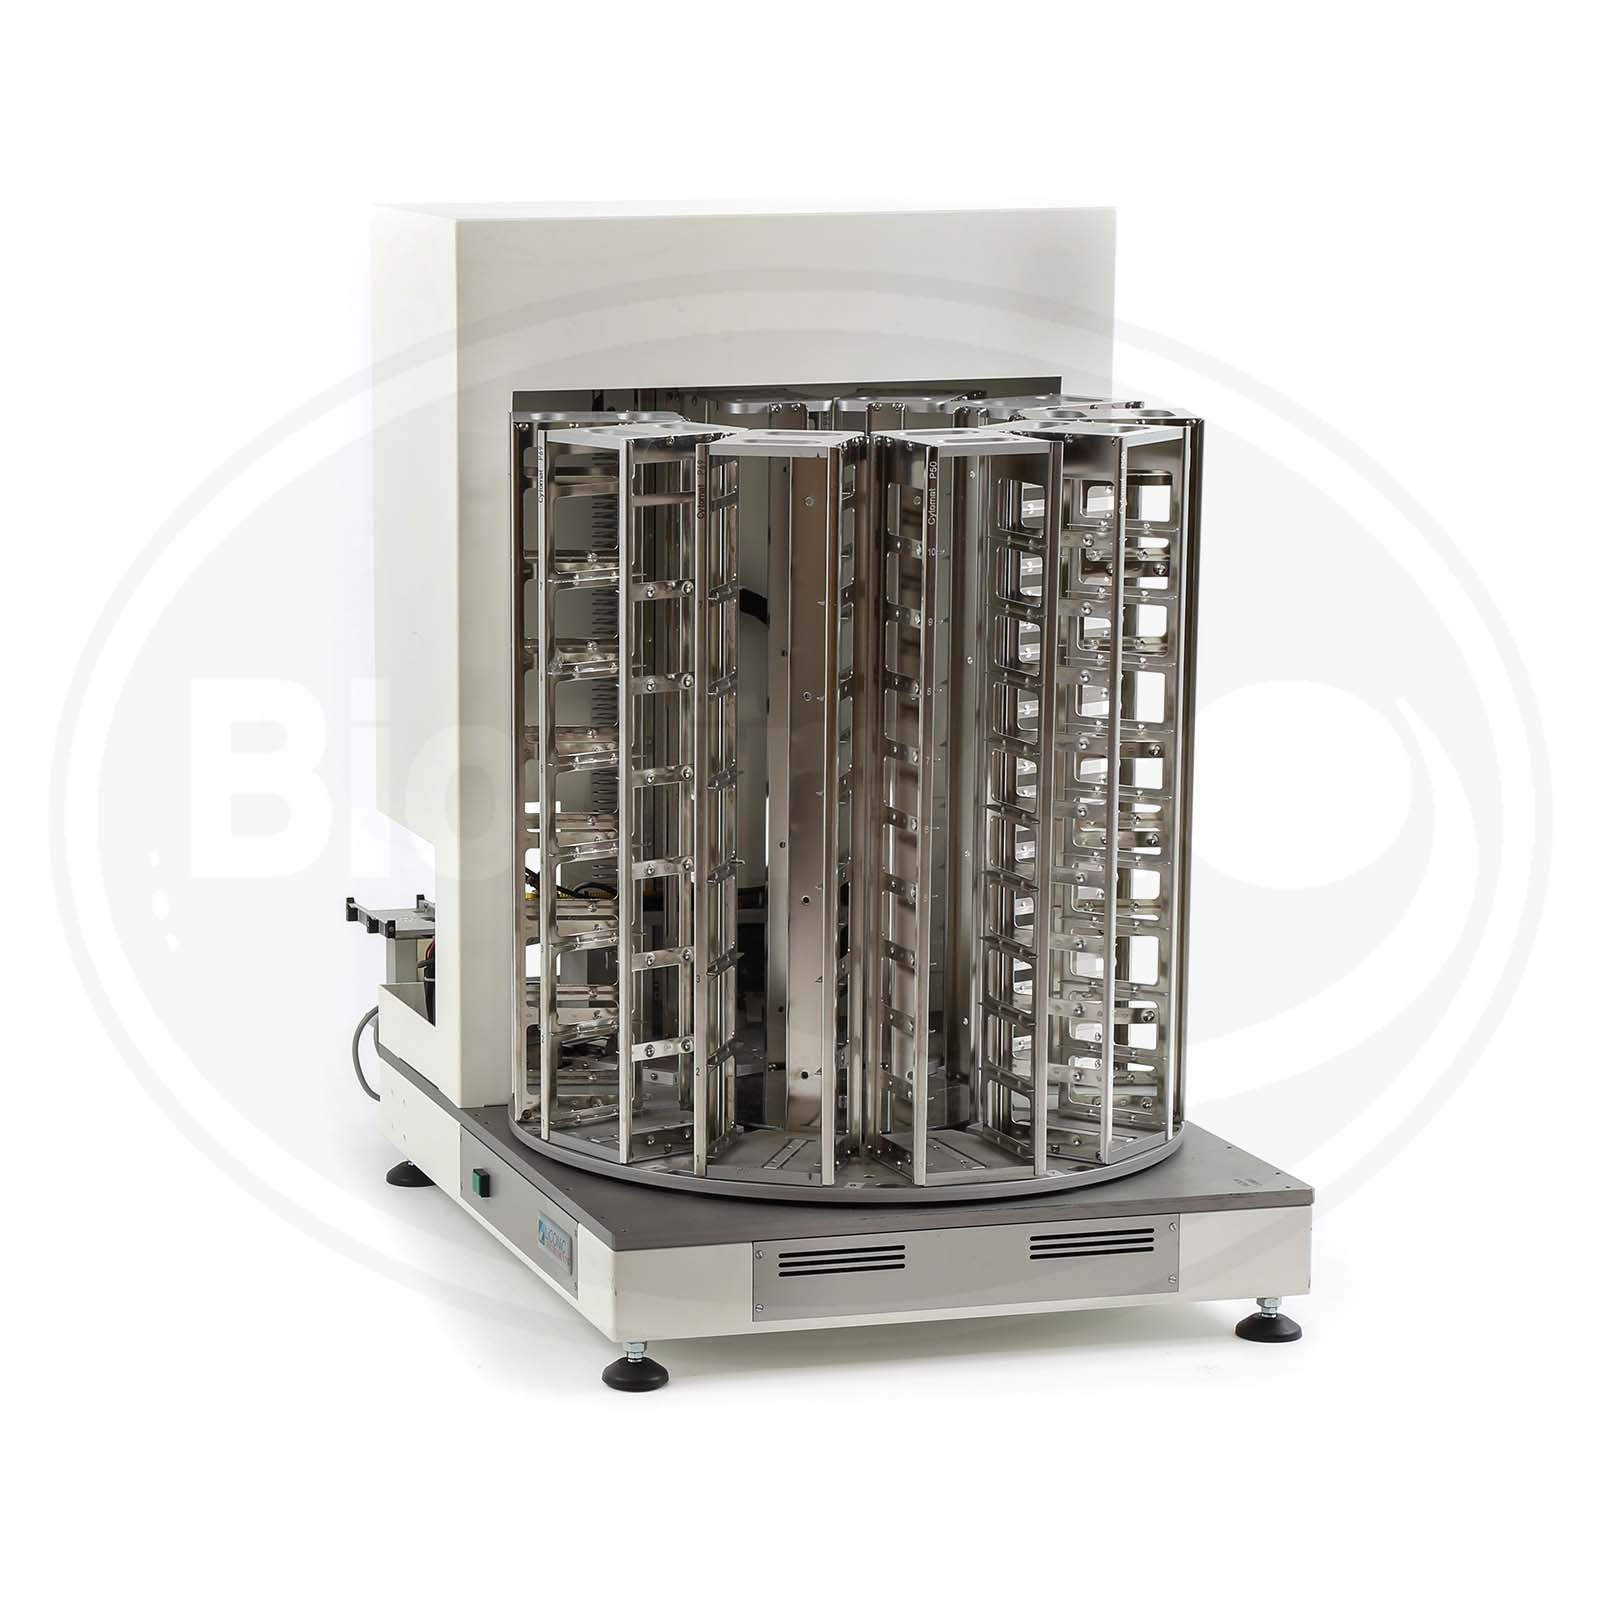 Liconic Instruments LPX-220 Hotel Carousel